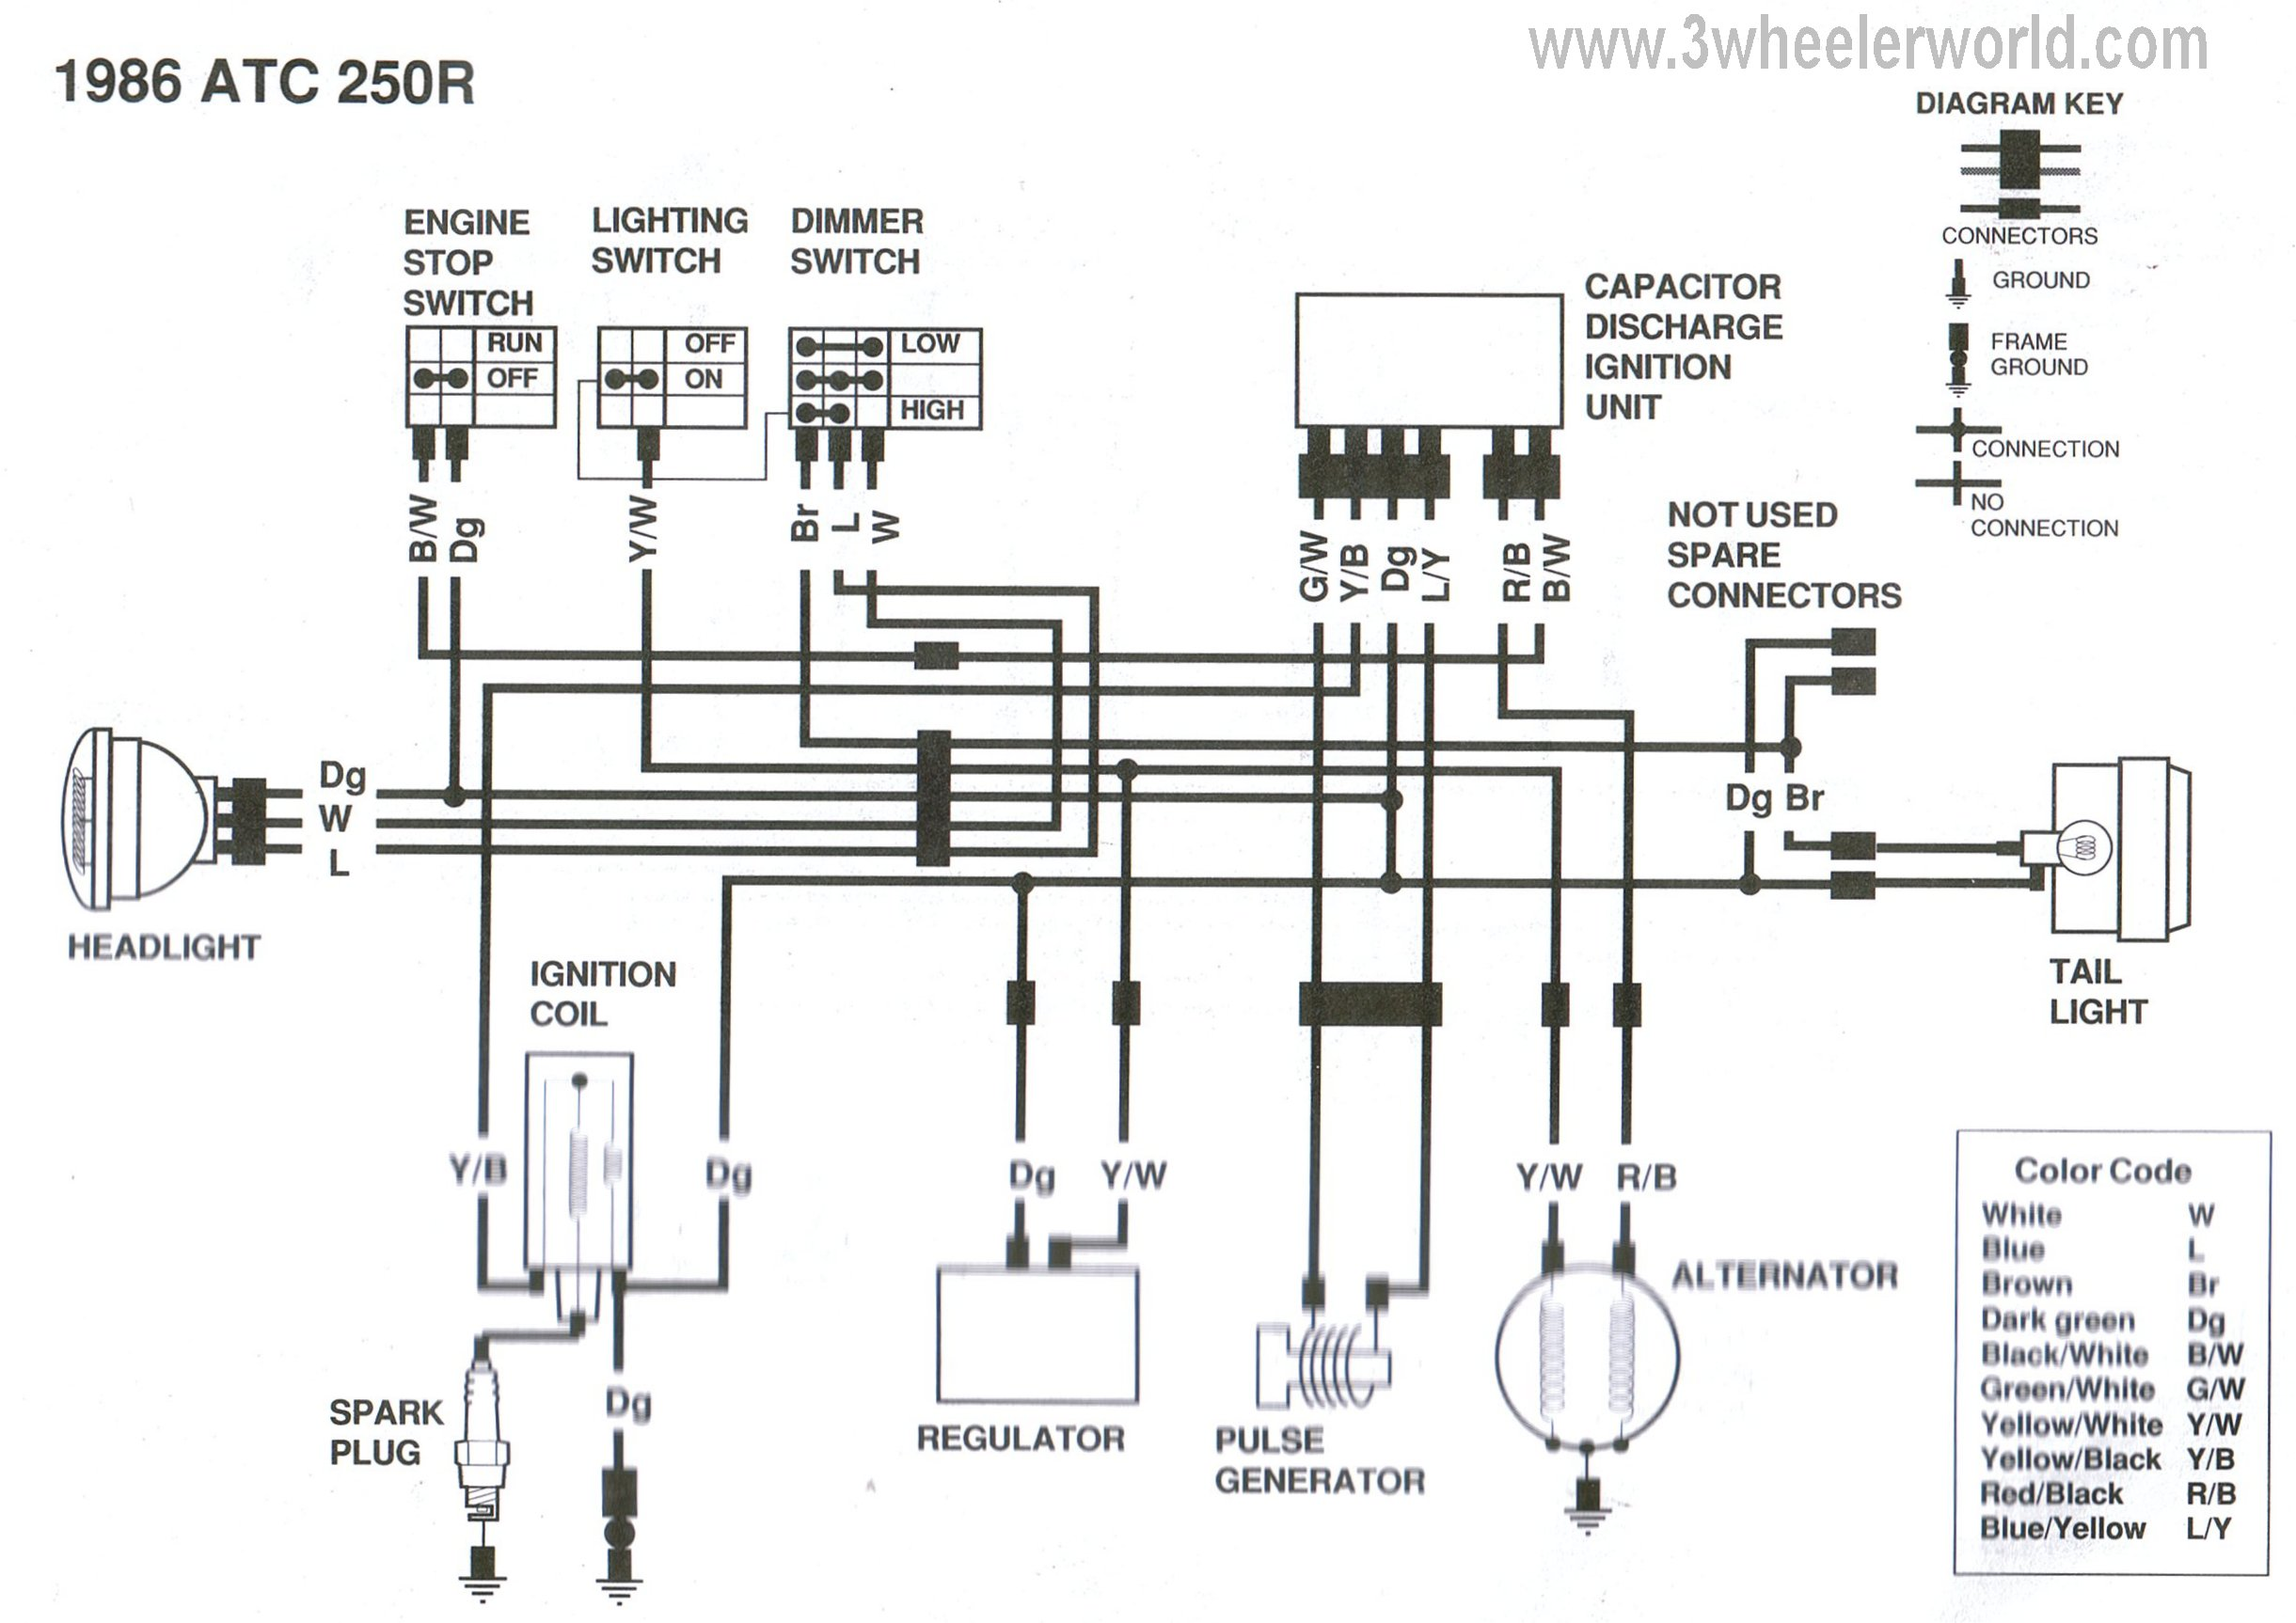 ATC250Rx86 3 wheeler world tech help honda wiring diagrams wiring diagram 1985 honda 250 fourtrax at bayanpartner.co